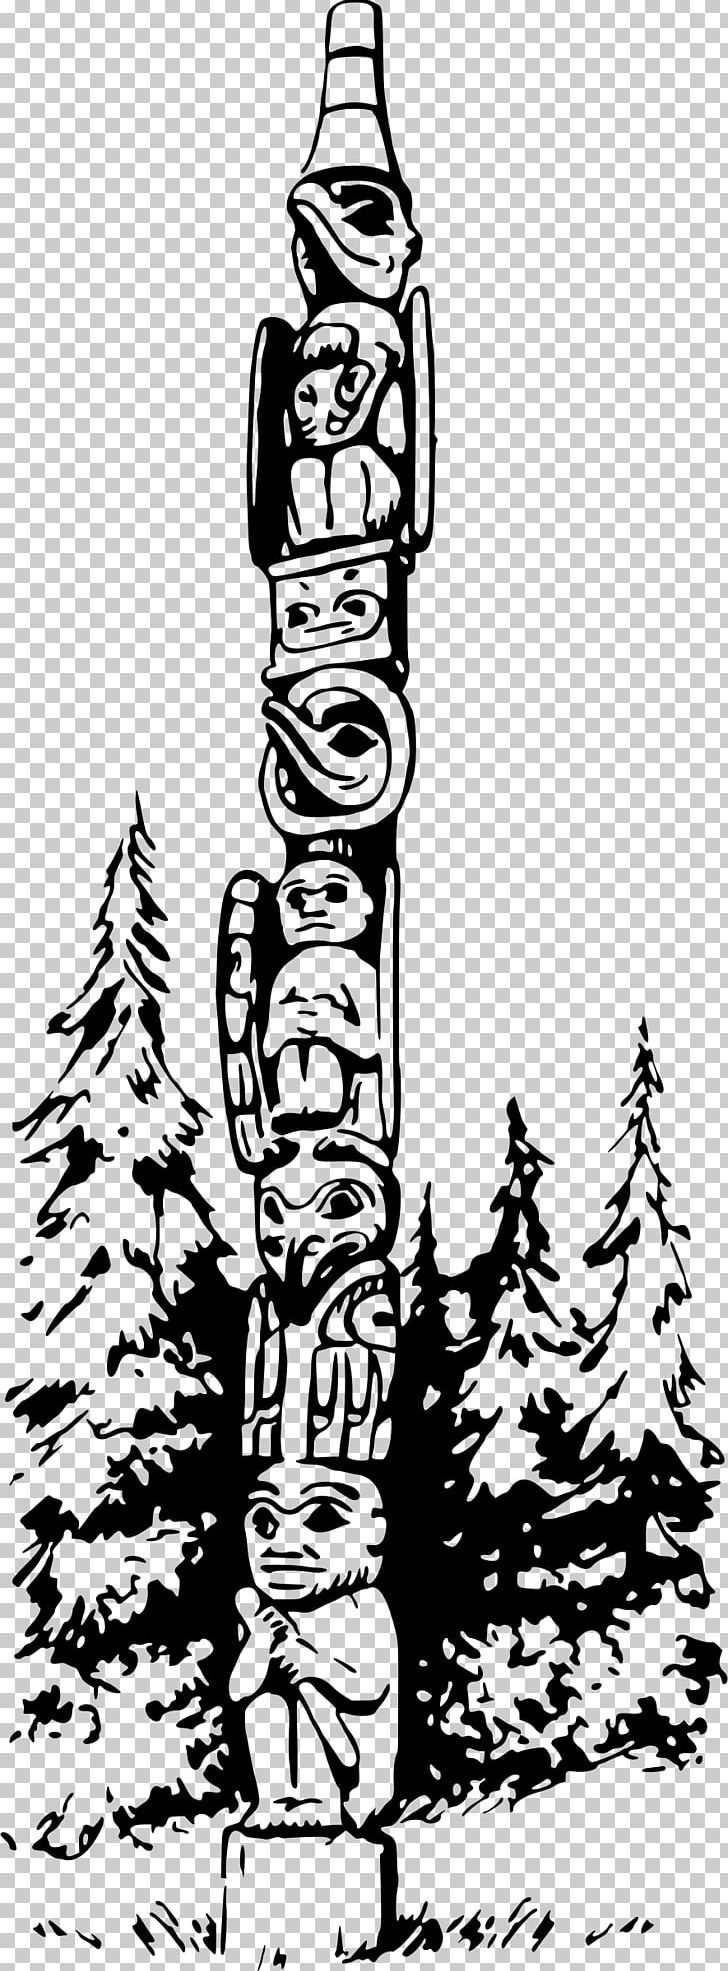 hight resolution of totem pole png clipart art black and white color coloring book drawing free png download